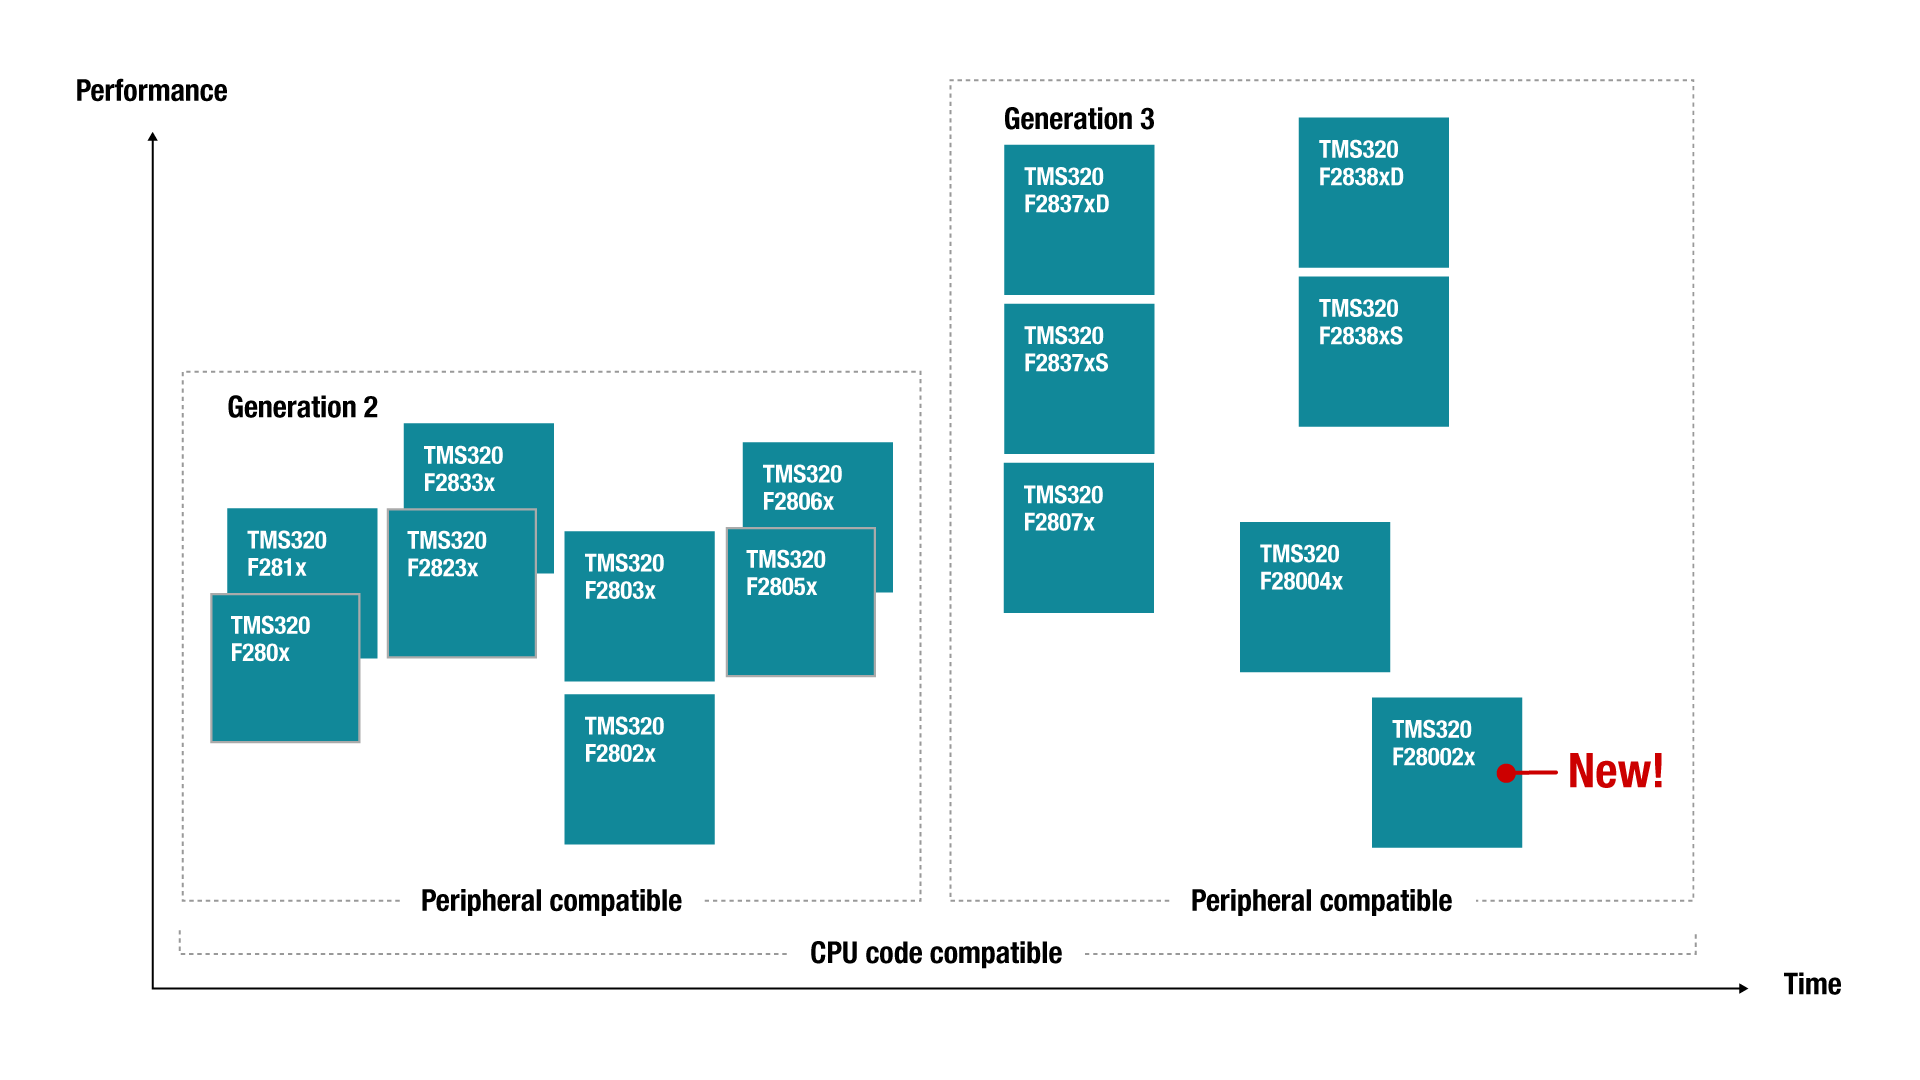 C2000 product portfolio showing performance of generation 2 and generation 3